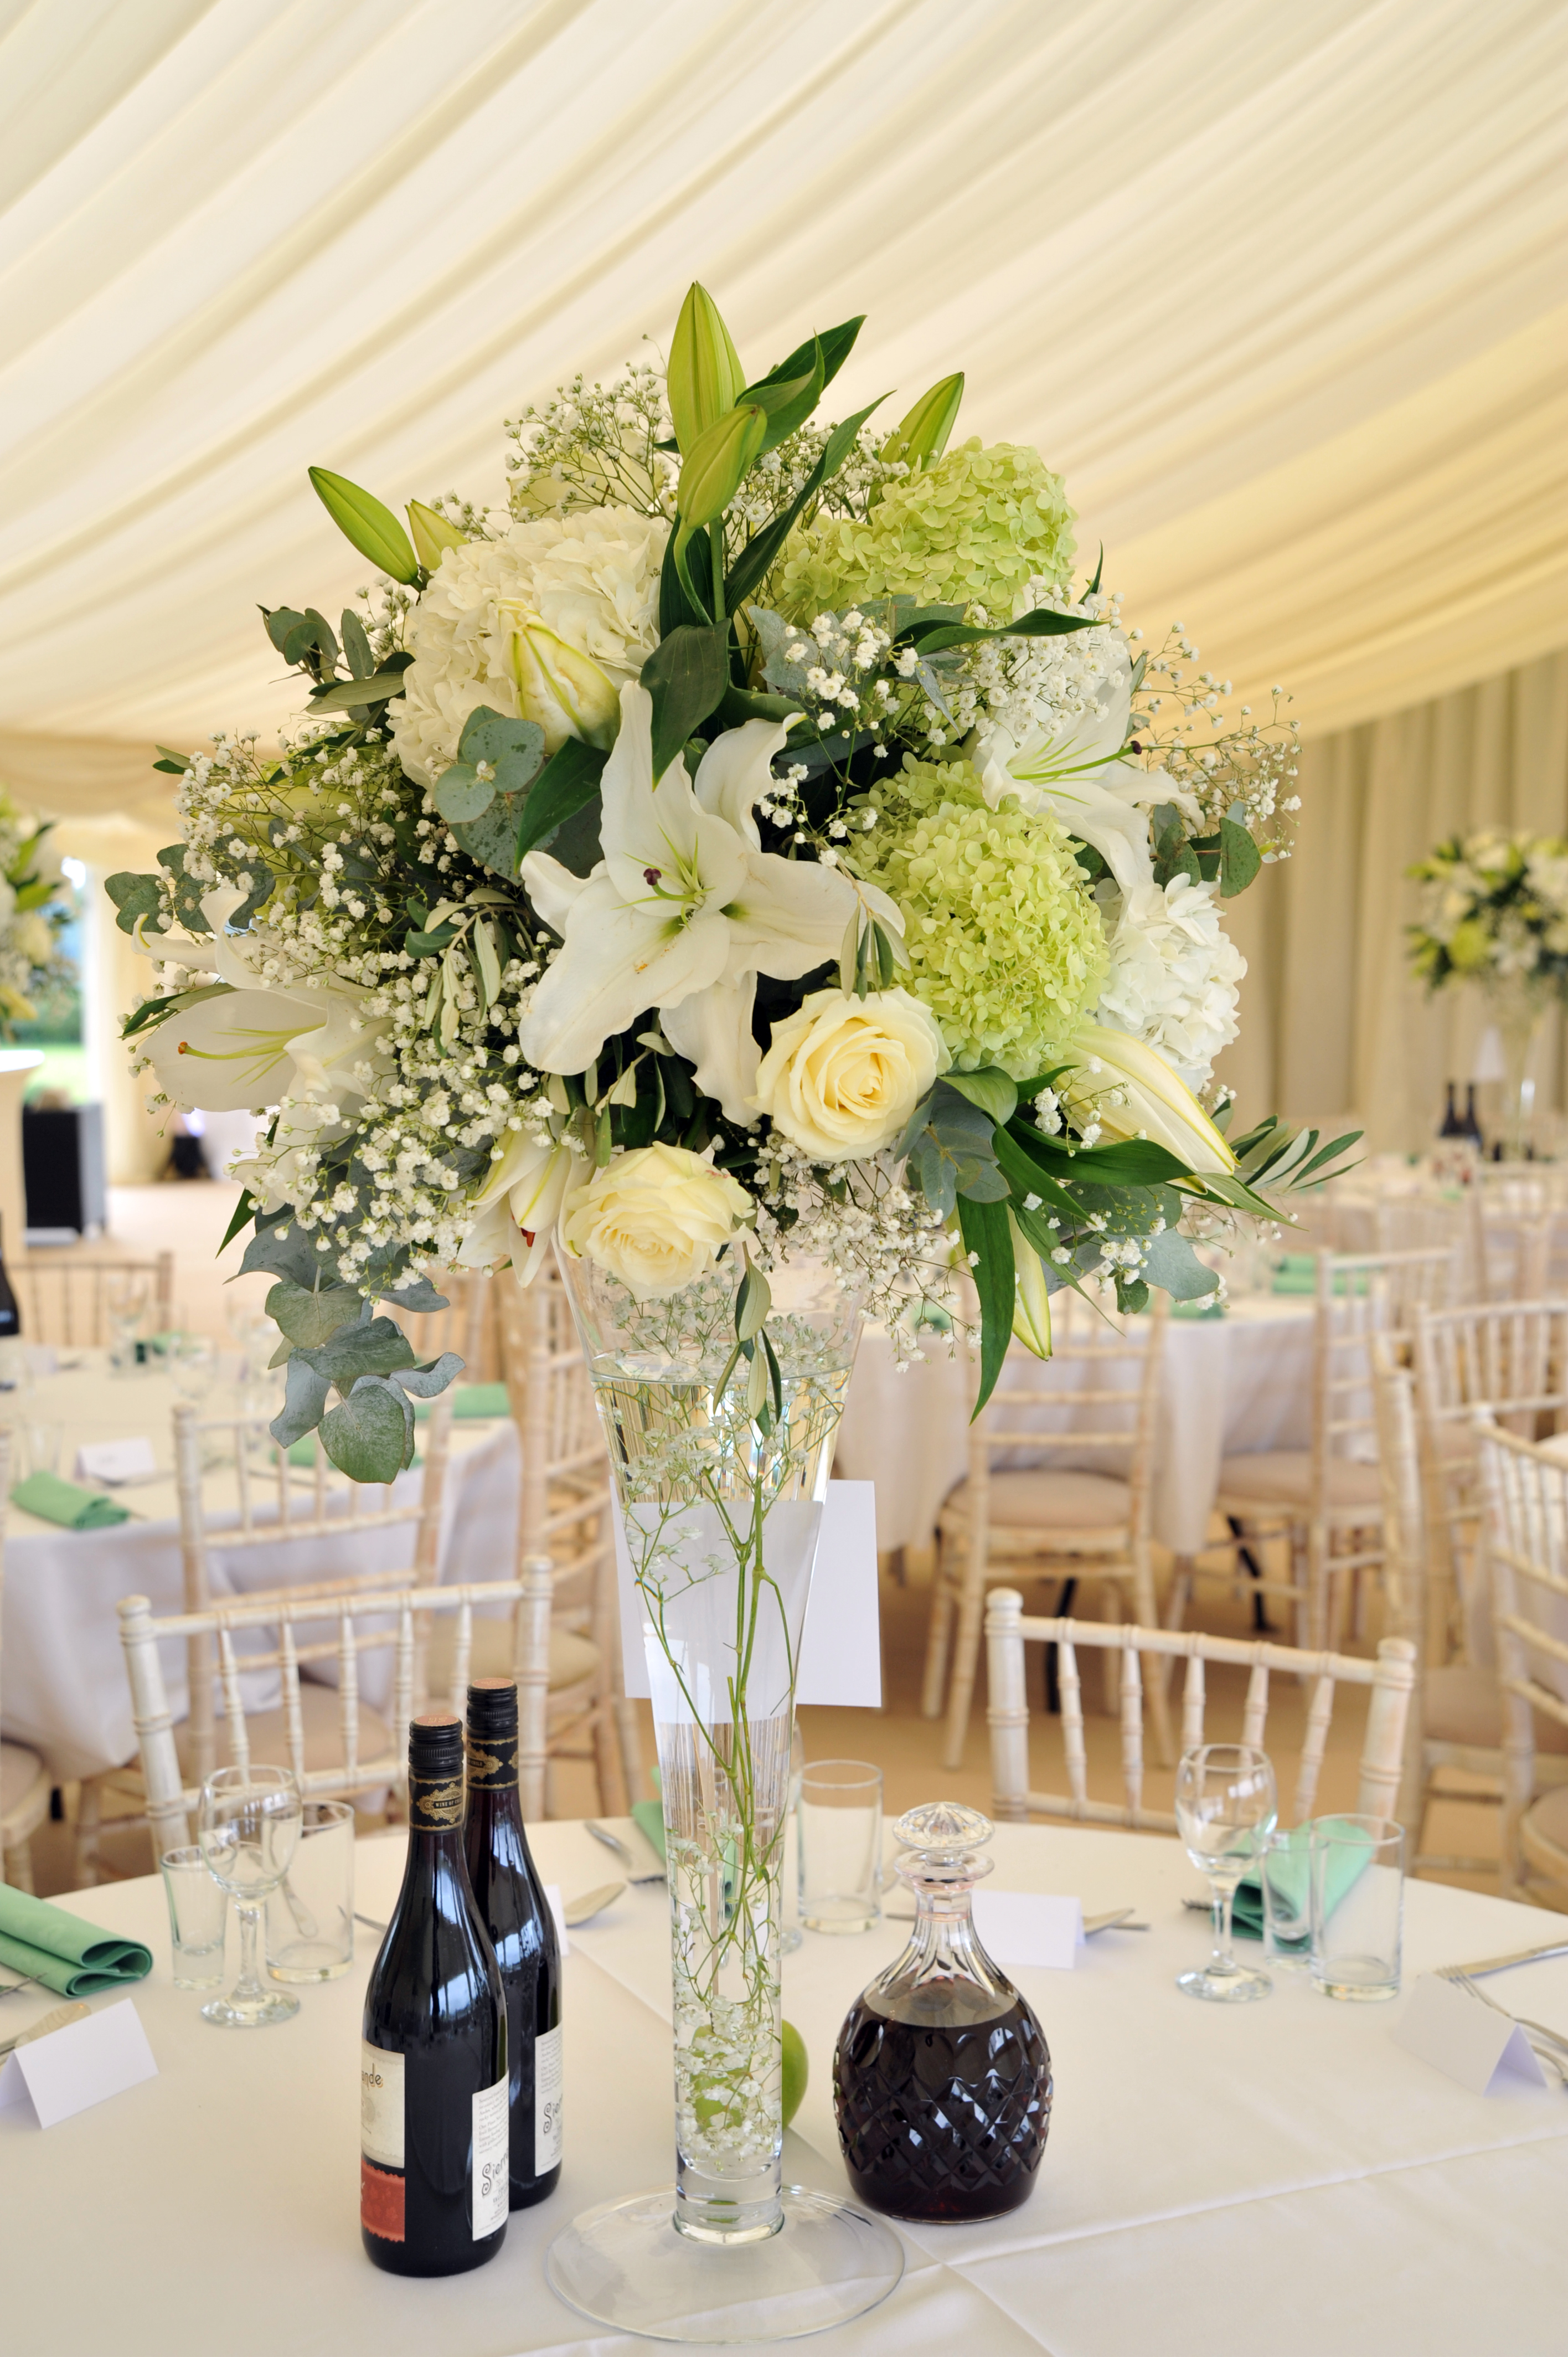 Large white and green centrepieces